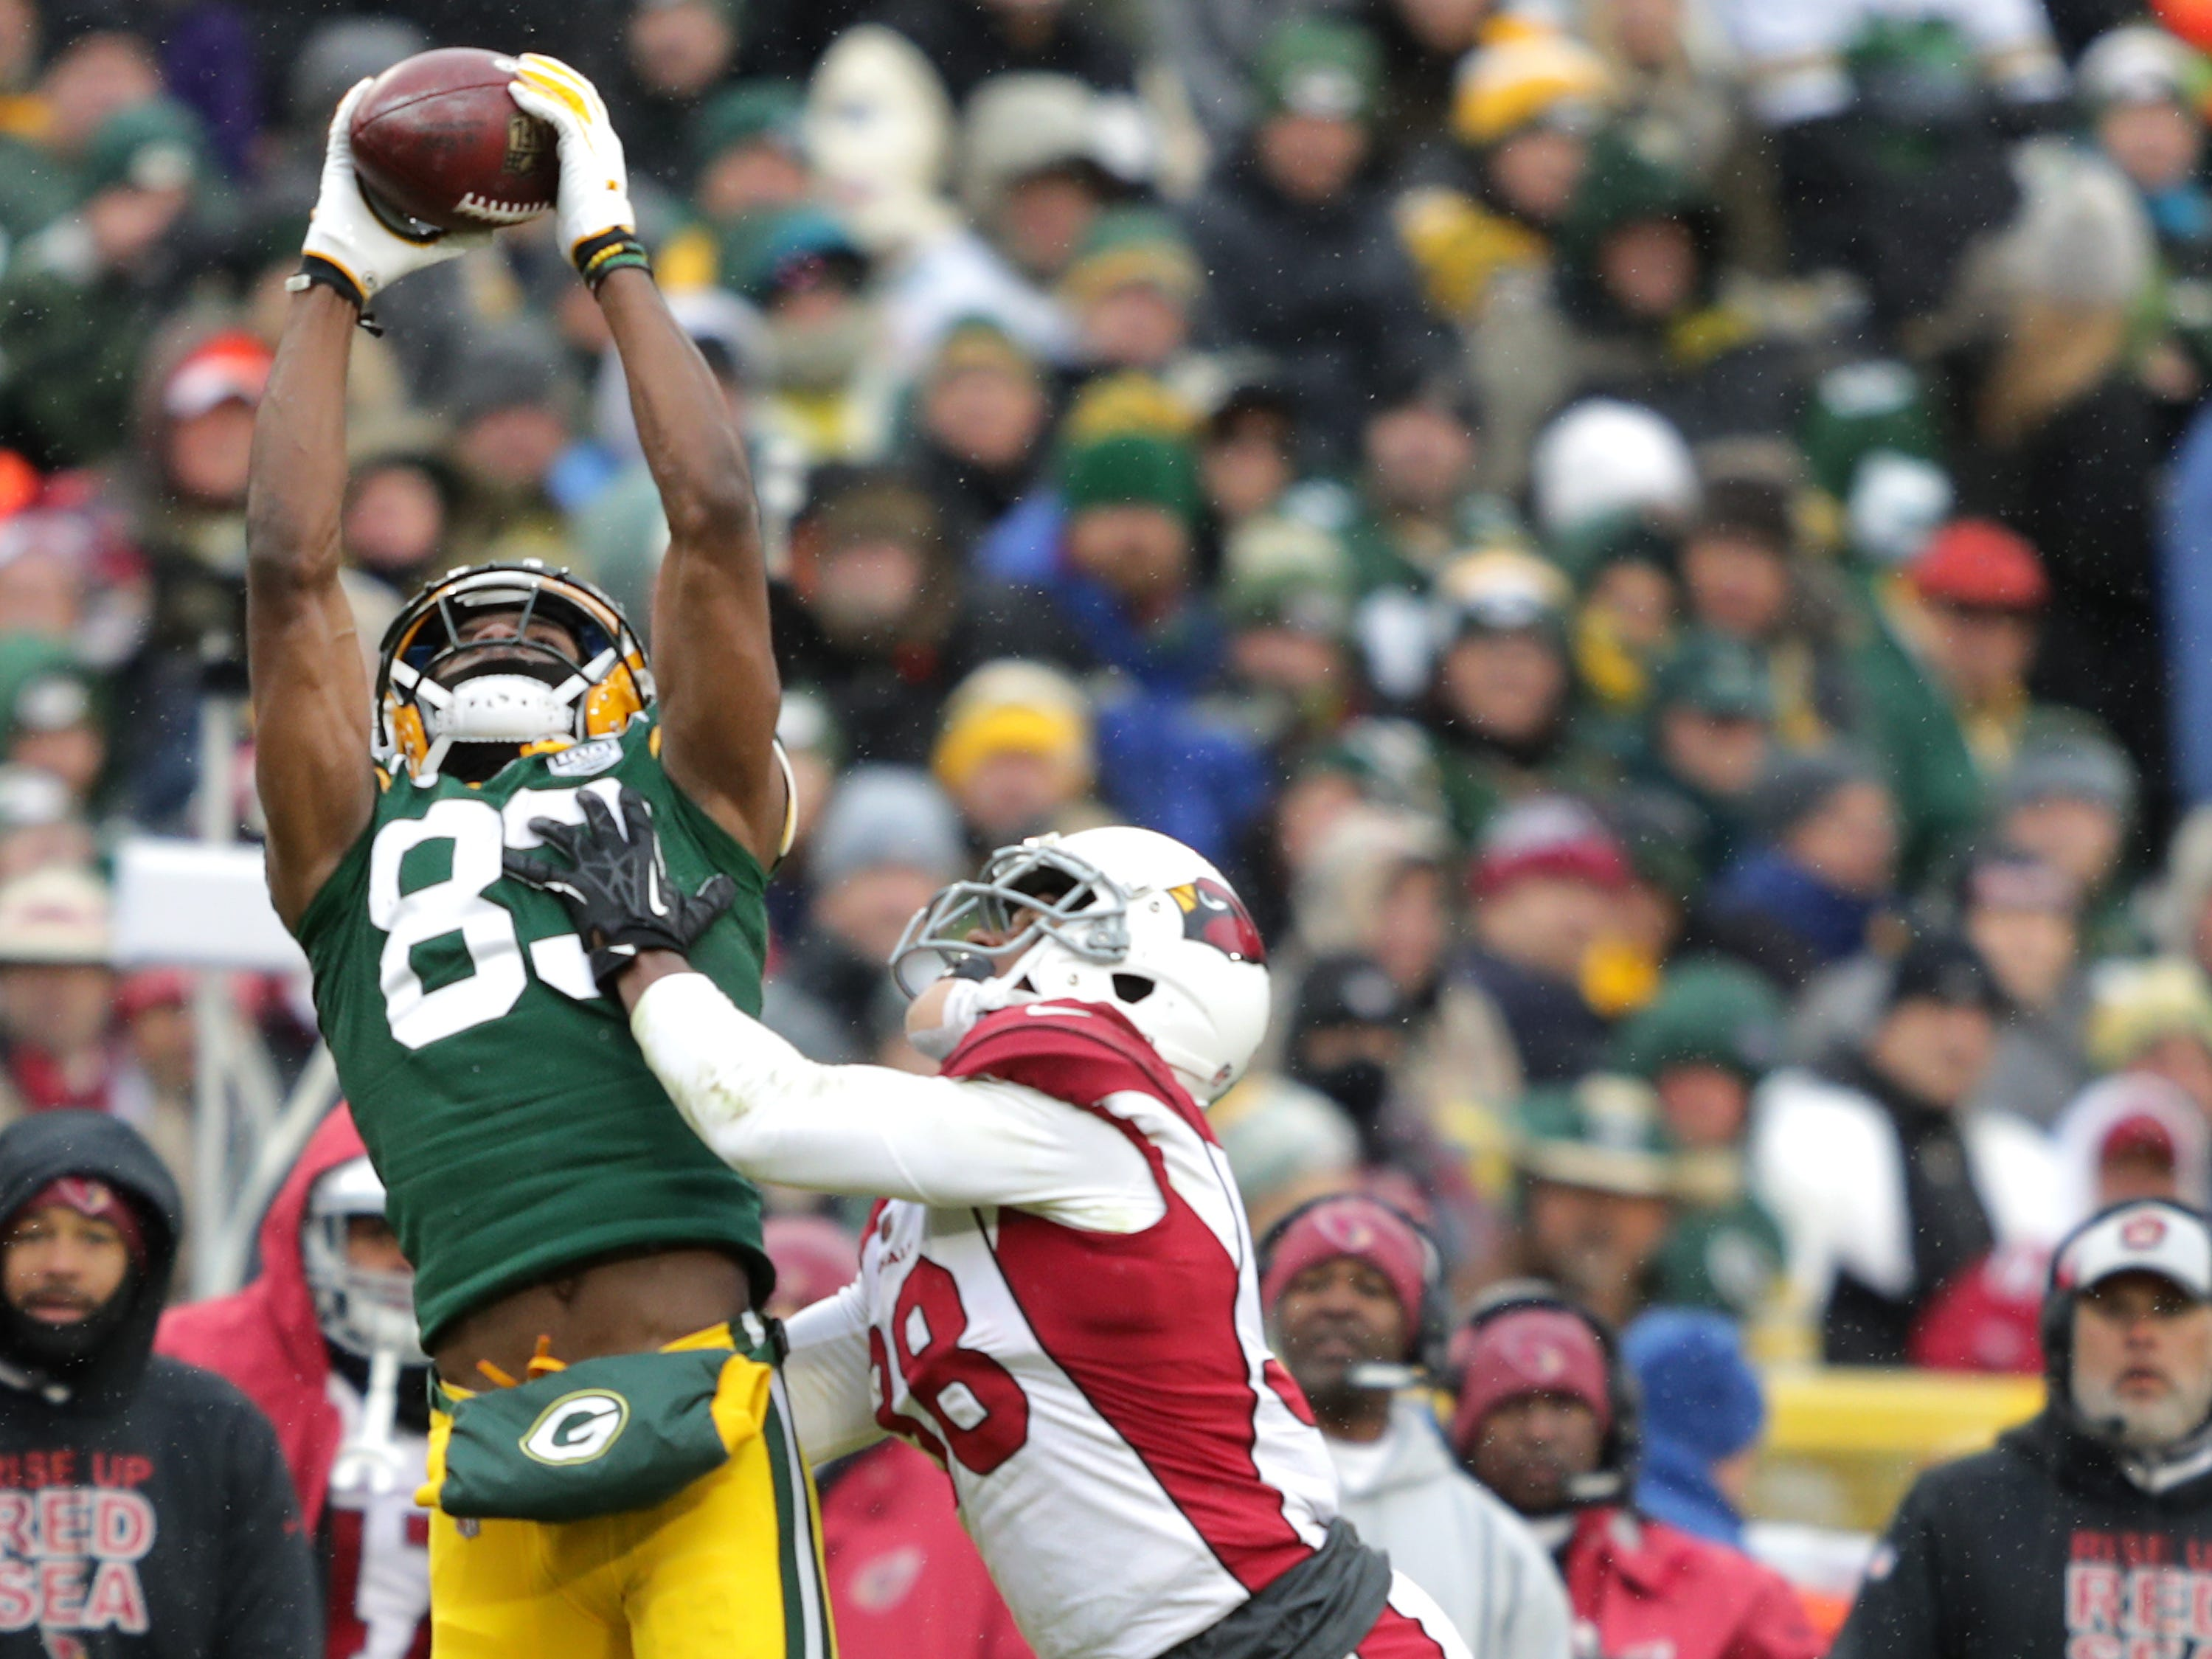 Green Bay Packers wide receiver Marquez Valdes-Scantling agsainst Arizona Cardinals defensive back David Amerson during their football game on Sunday, December 2, 2018, at Lambeau Field in Green Bay, Wis. Wm. Glasheen/USA TODAY NETWORK-Wisconsin.